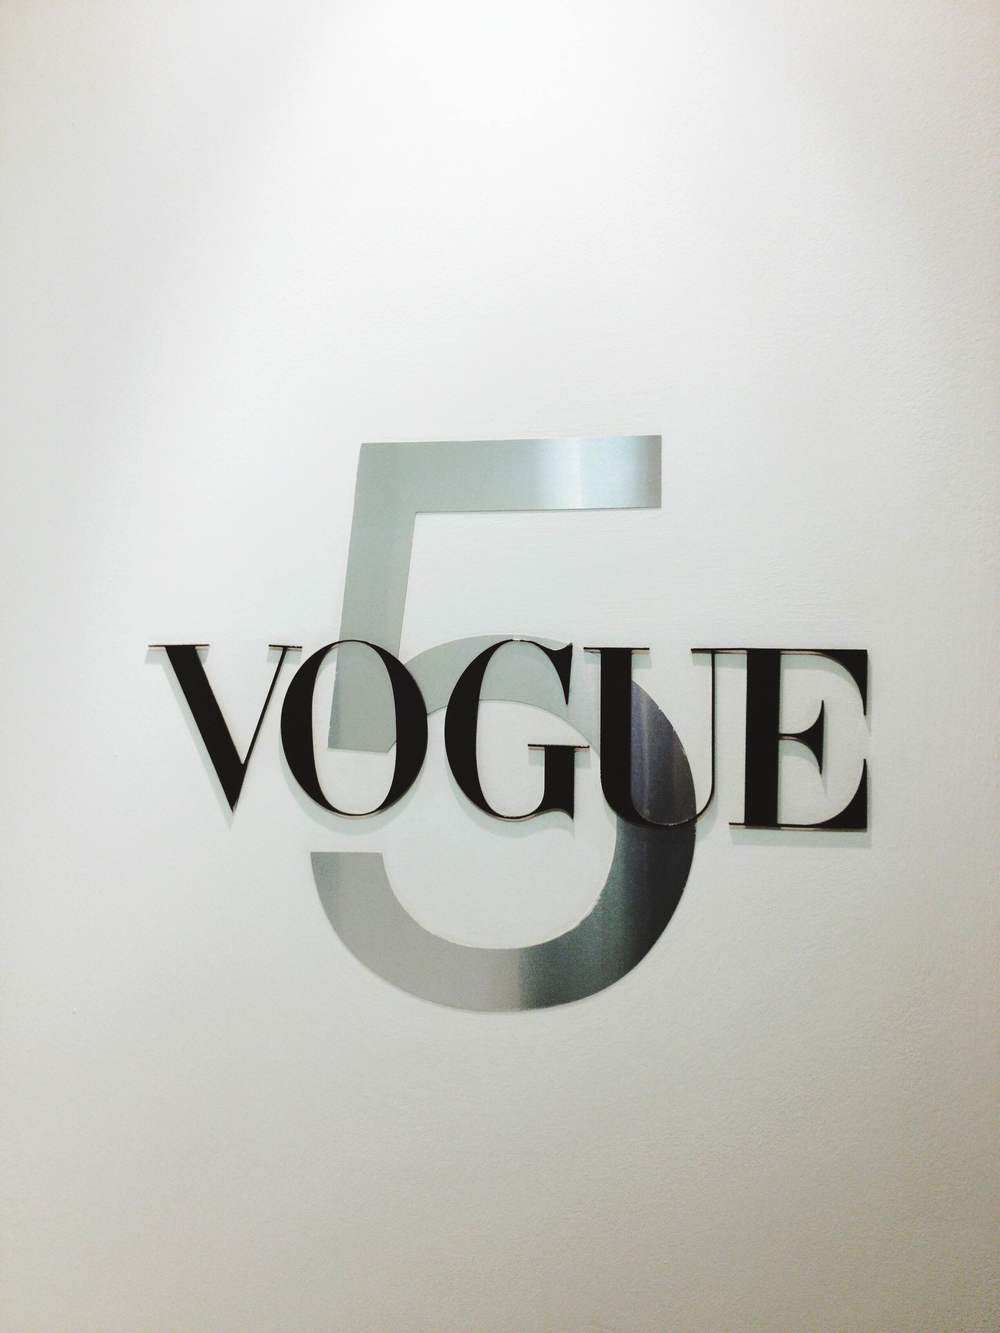 Taken at Vogue UK Offices, right before my interview